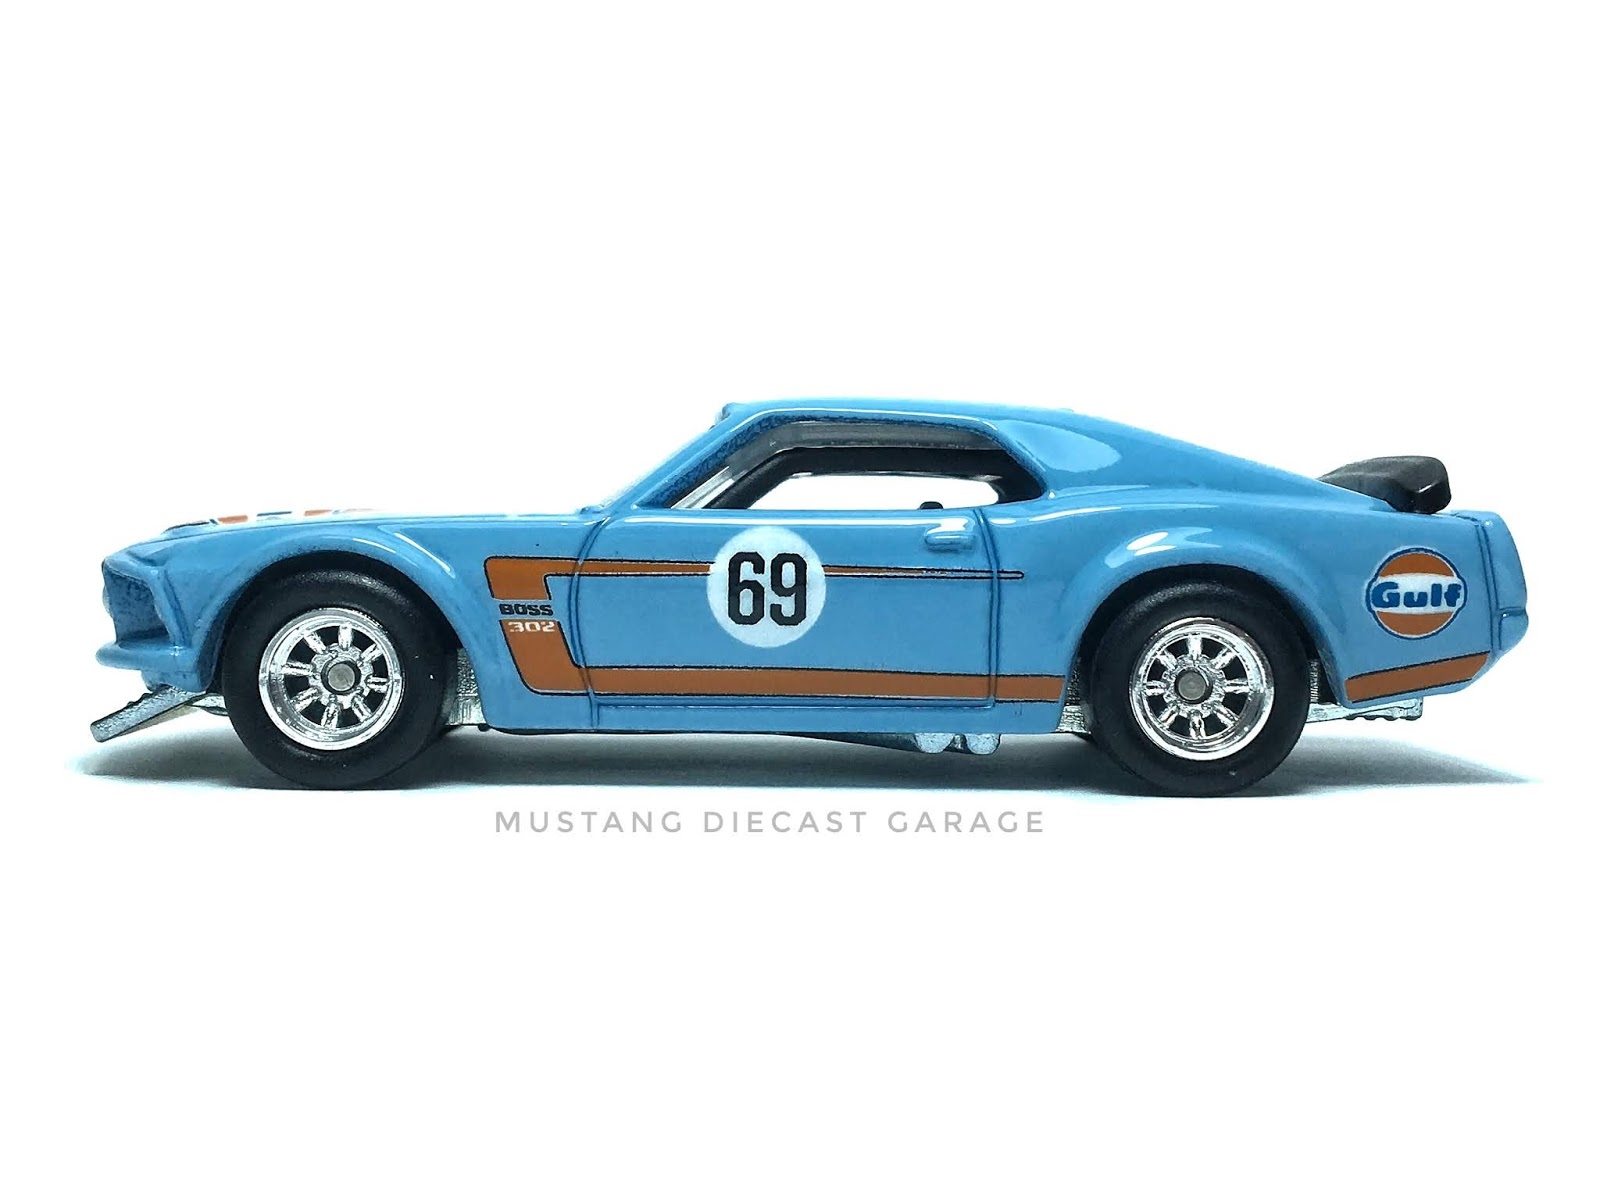 Hot wheels 69 ford mustang boss 302 series 2019 car culture gulf exclusive สีฟ้า 164